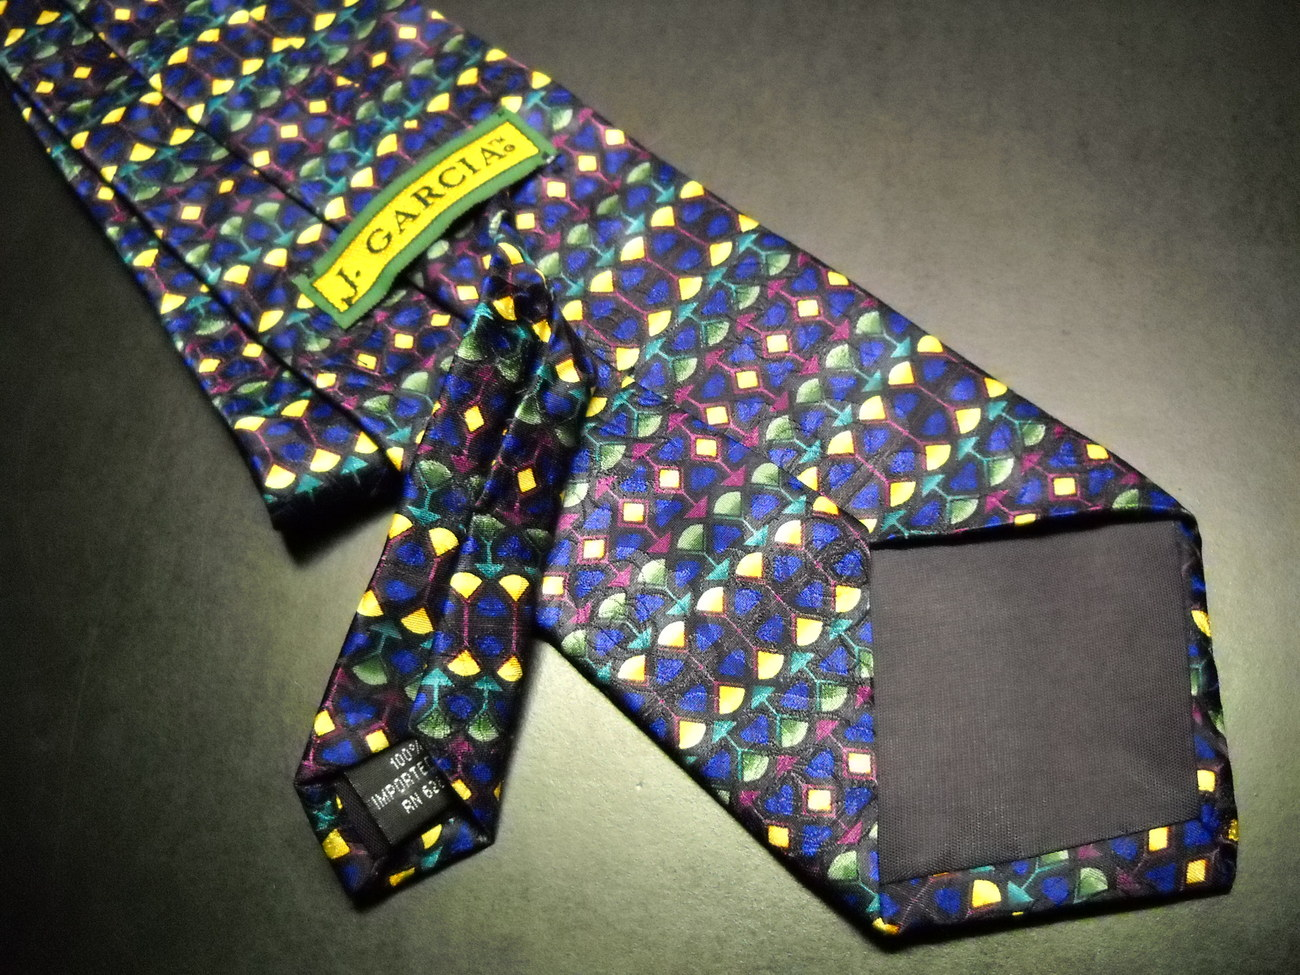 J Garcia Neck Tie No Title Bright Horizontal Bands of Blues Greens Golds Silk